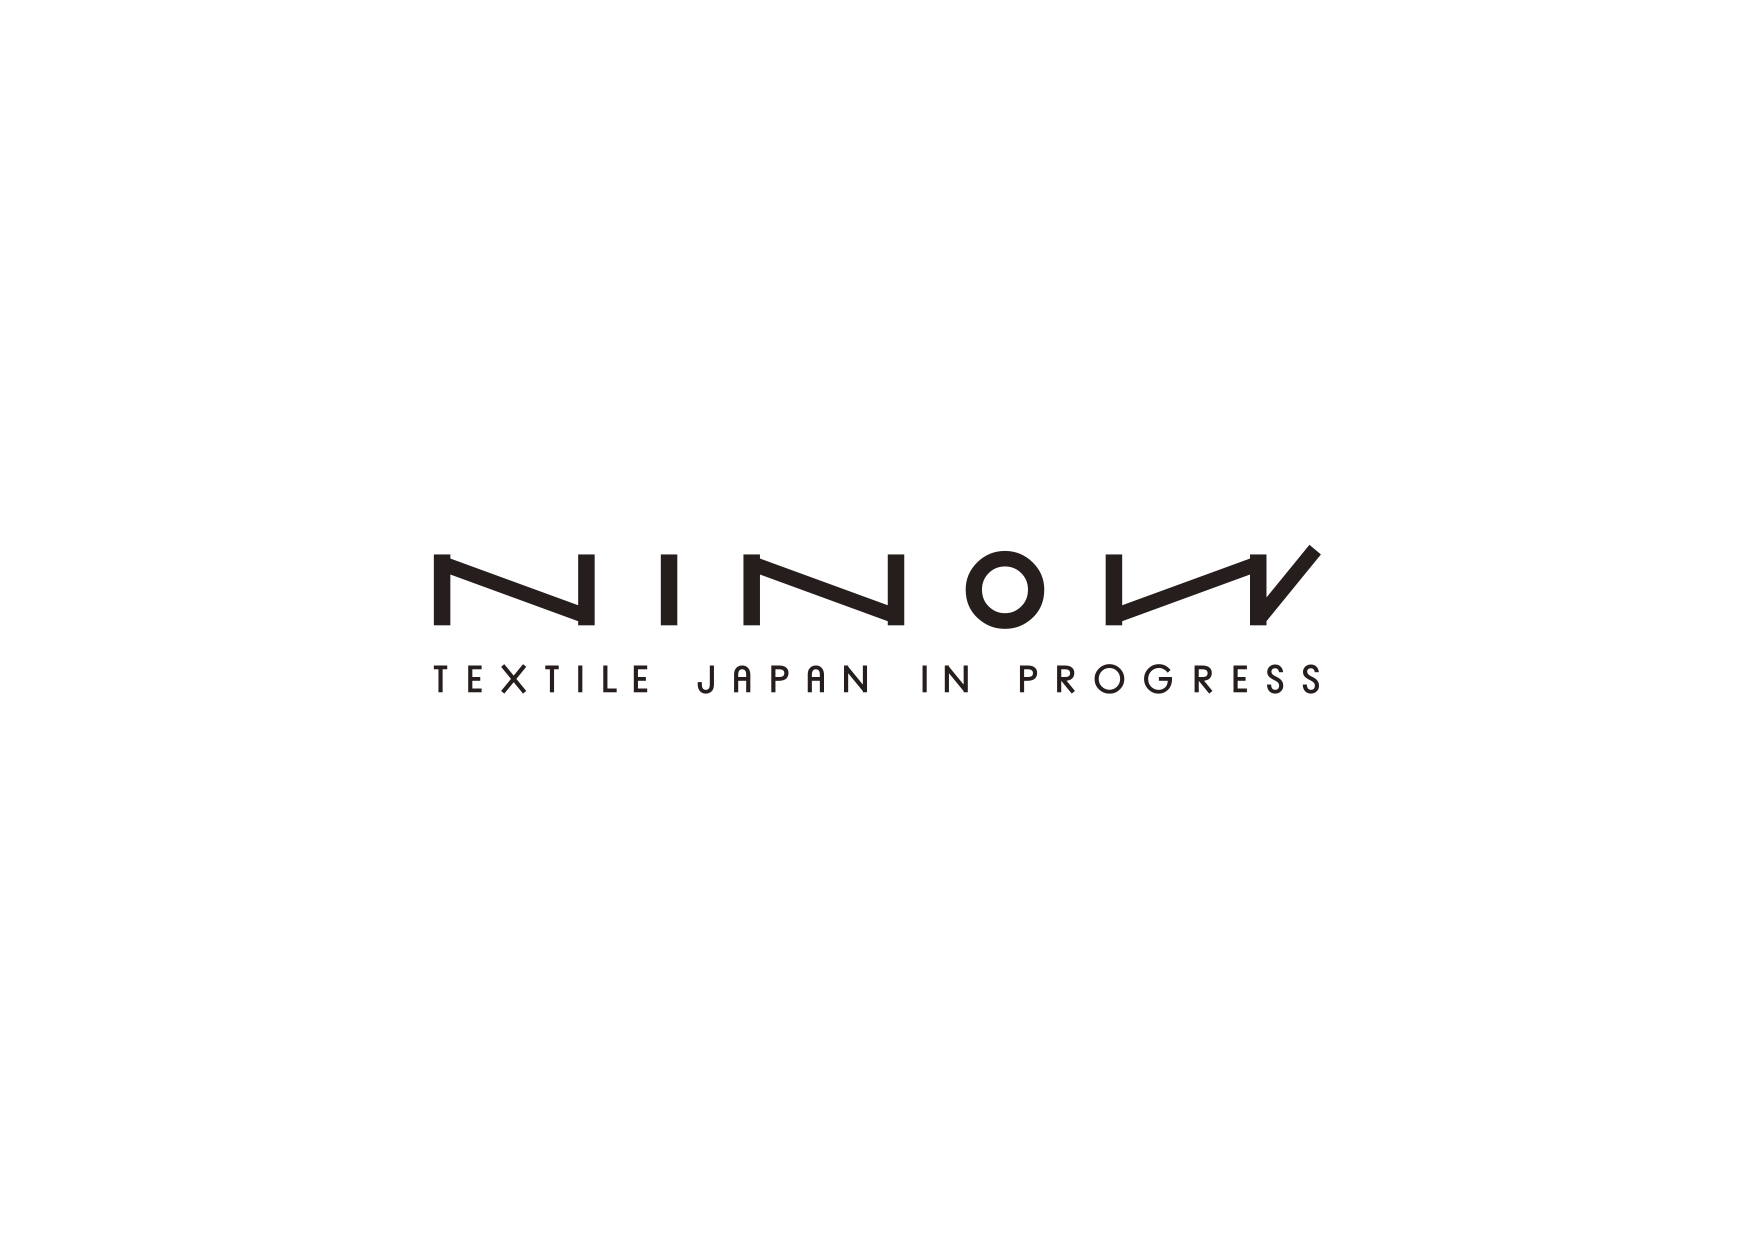 ninow textile japan in progress